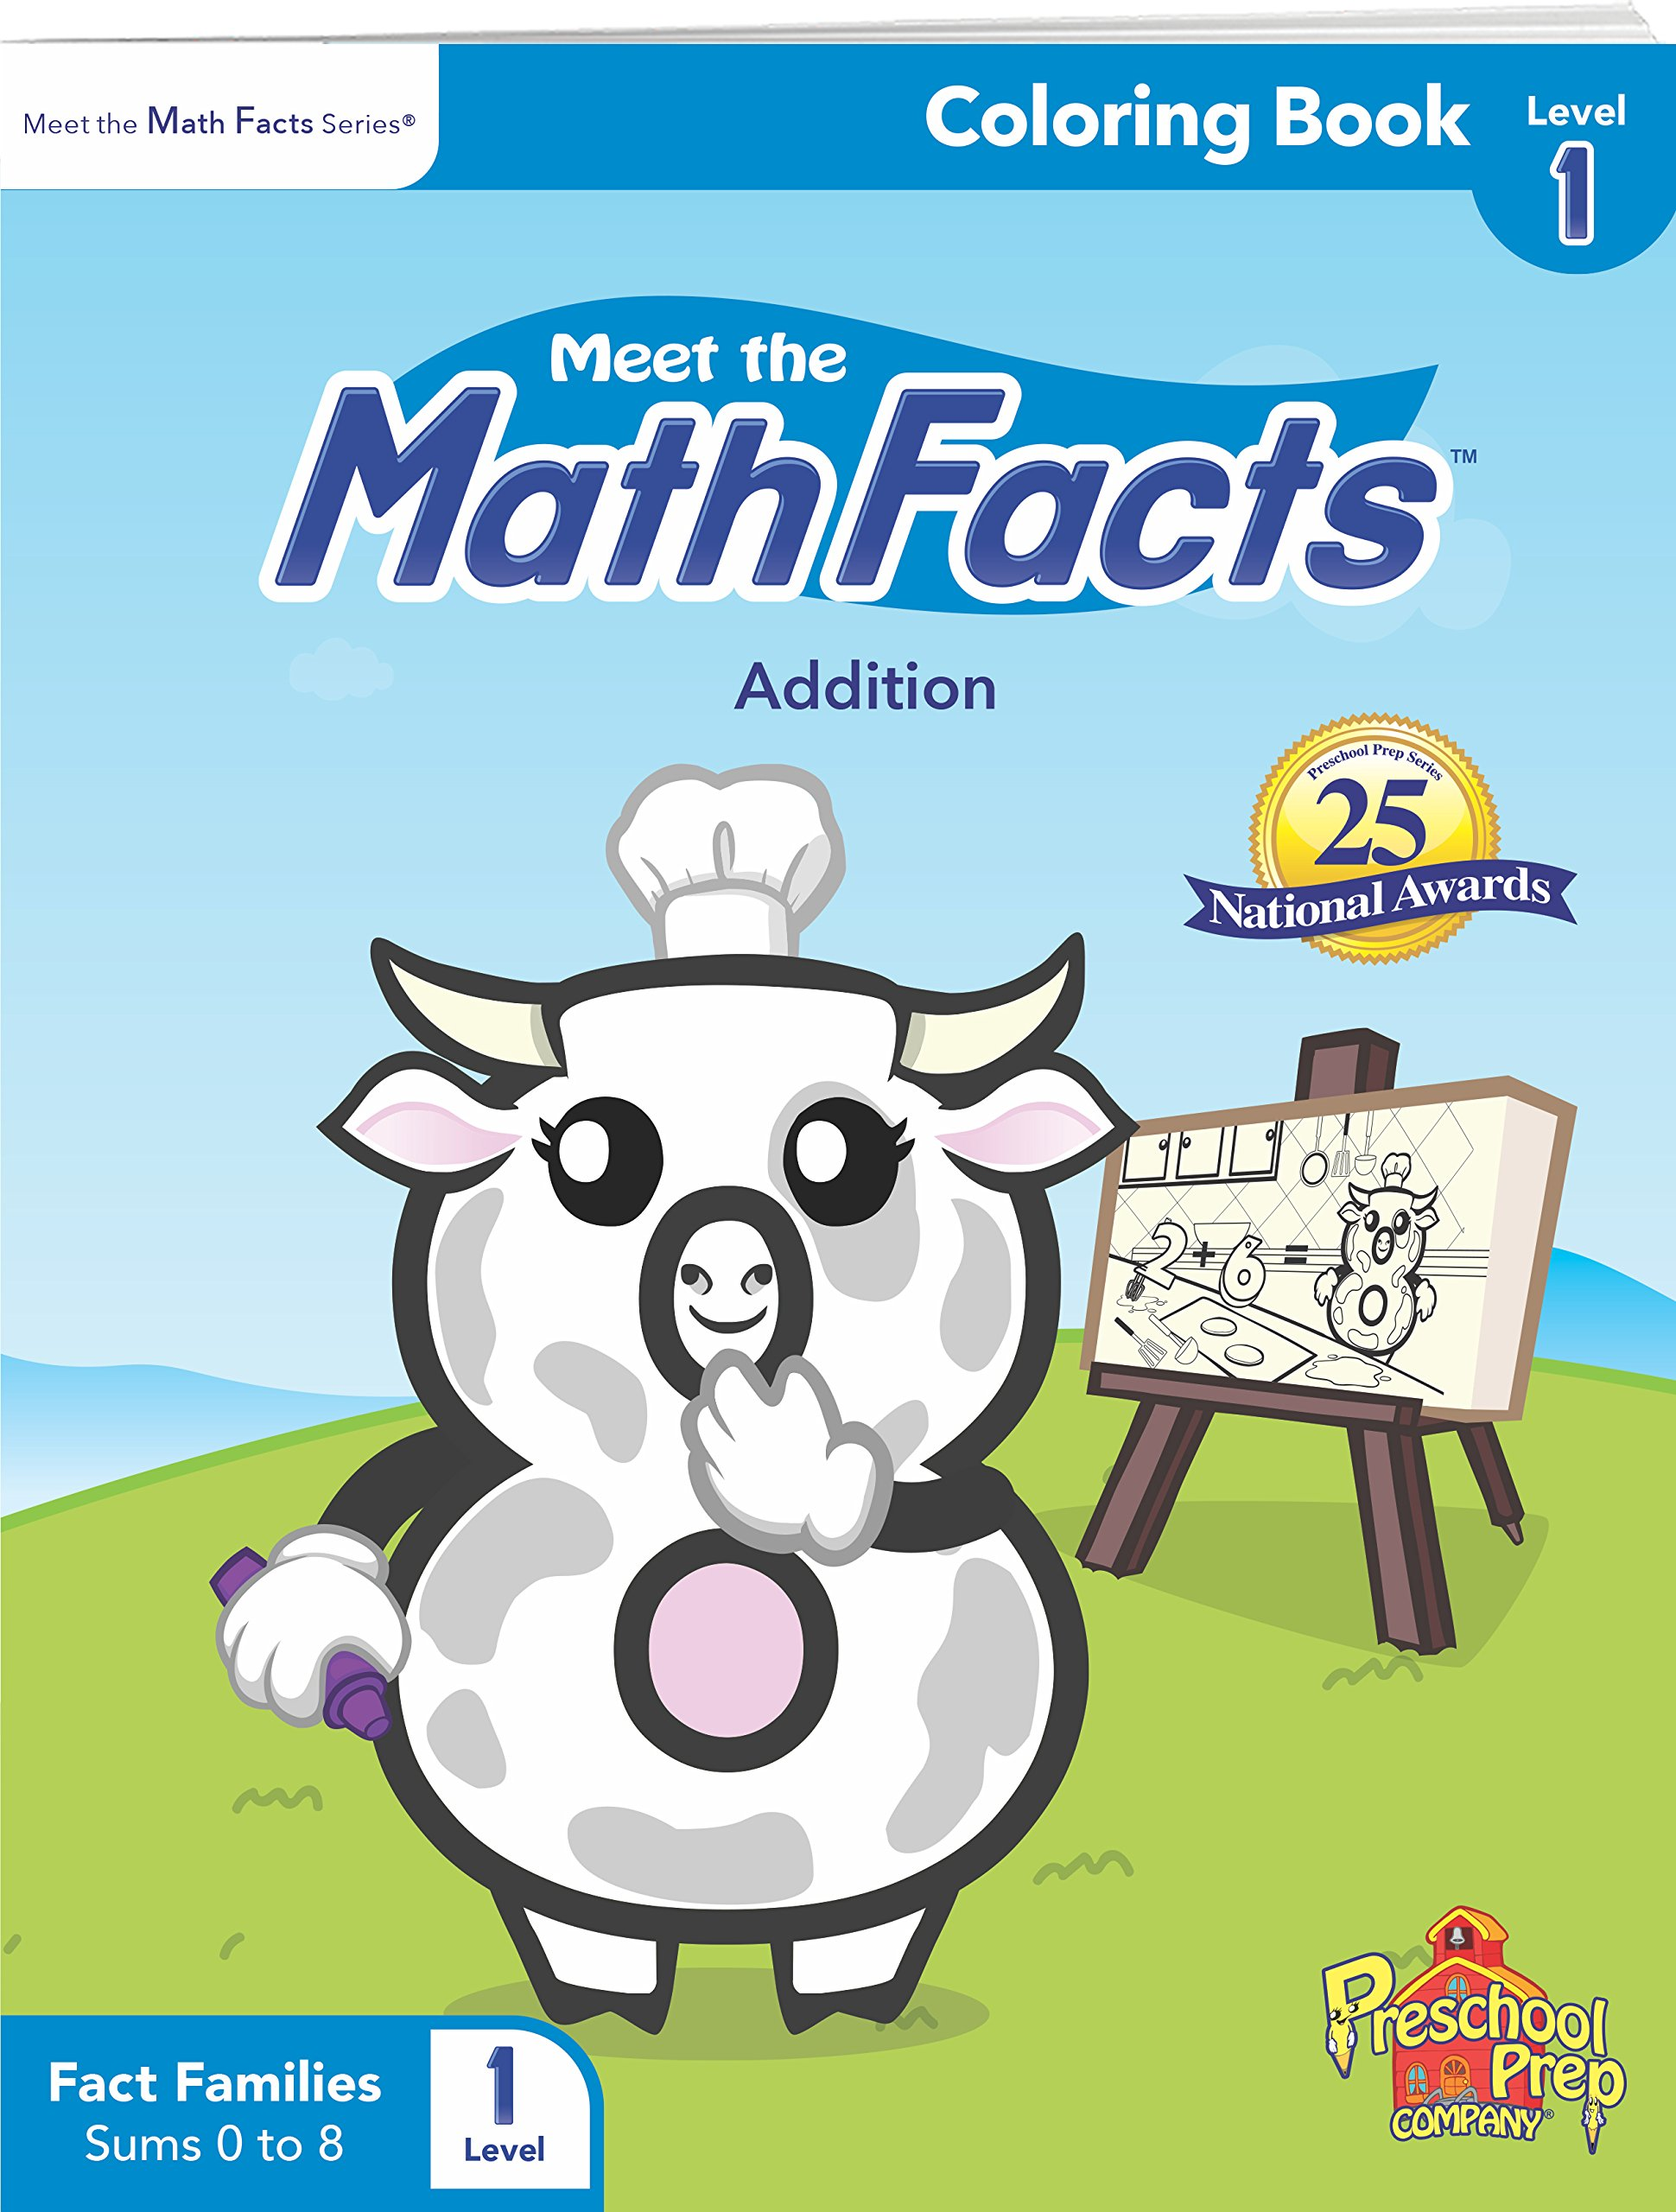 Meet the Math Facts Level 1 - Coloring Book: Kathy Oxley ...